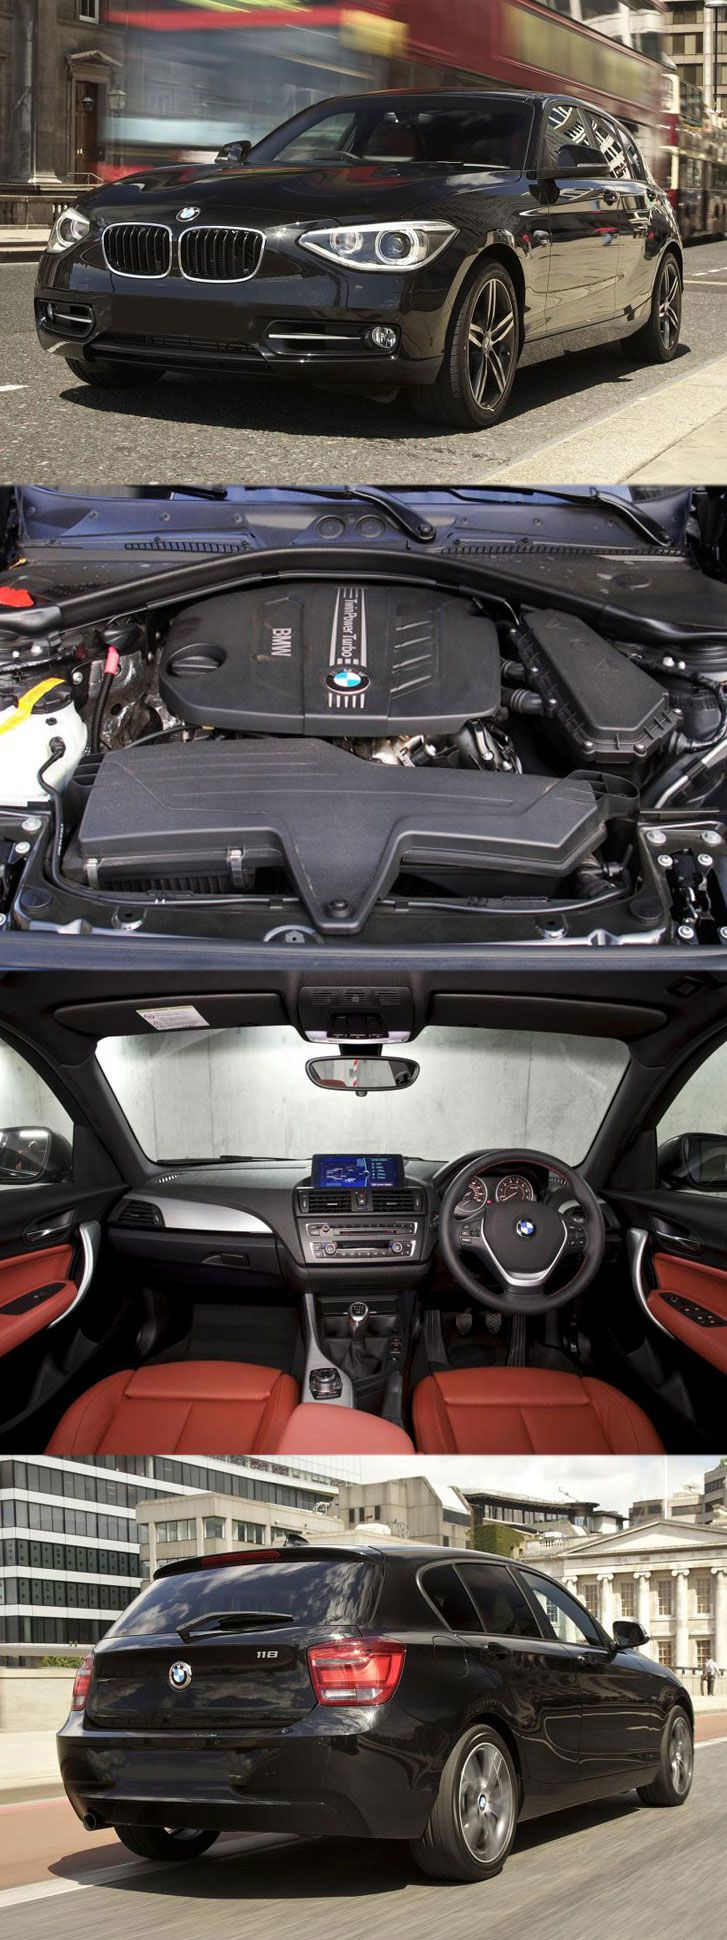 Bmw 118d 2 0 litre engine visit here for more information https